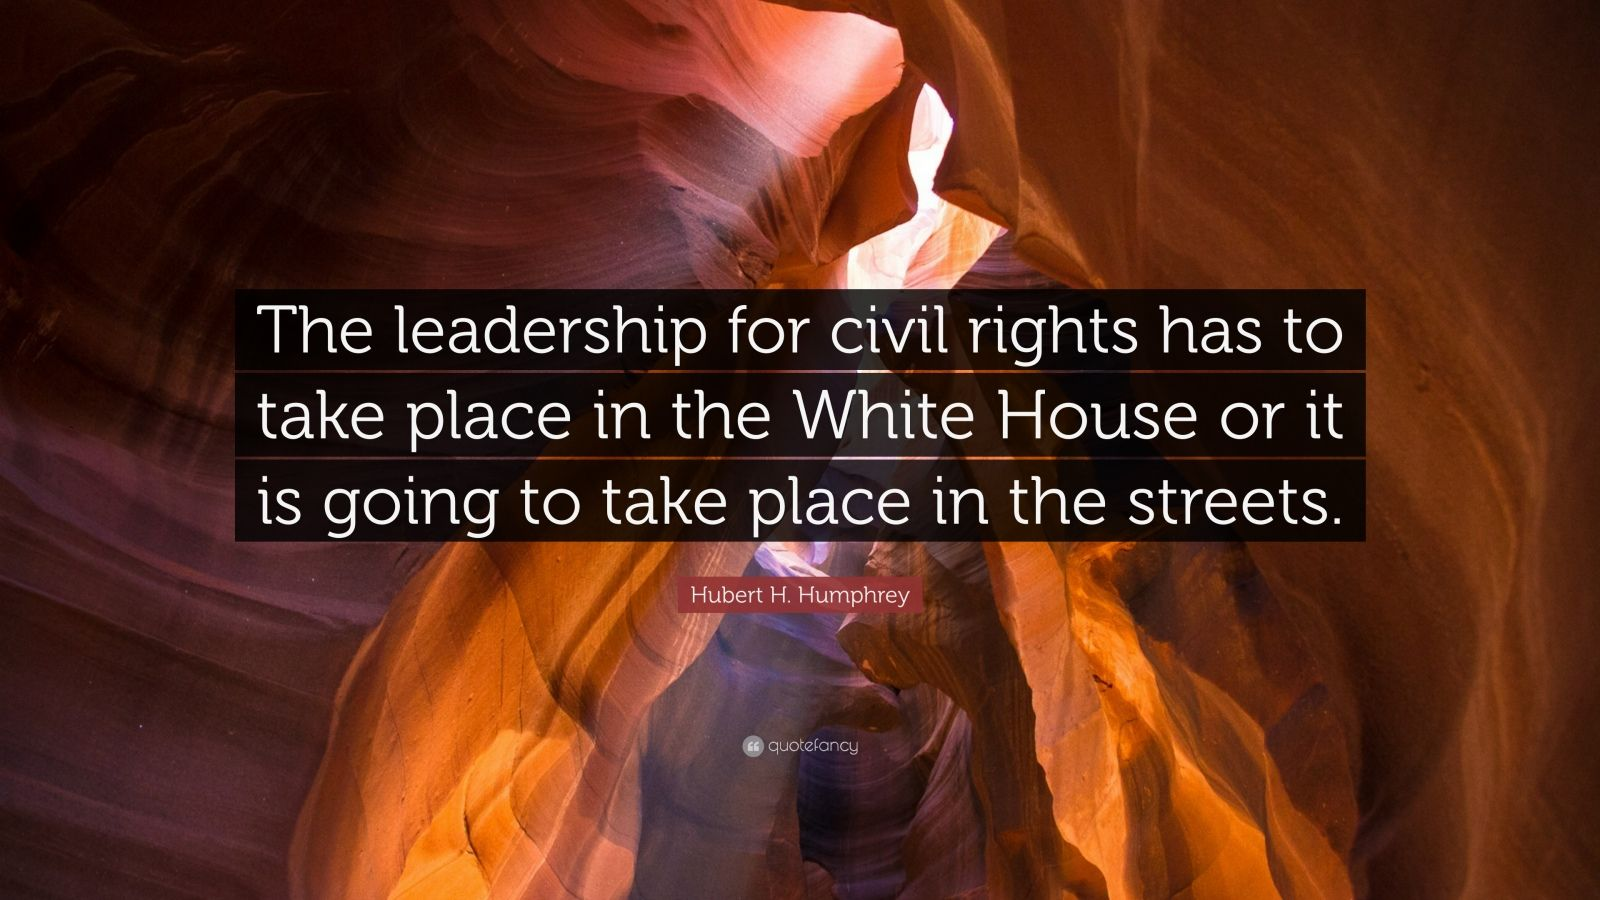 """Hubert H. Humphrey Quote: """"The leadership for civil rights has to take place in the White House or it is going to take place in the streets."""""""